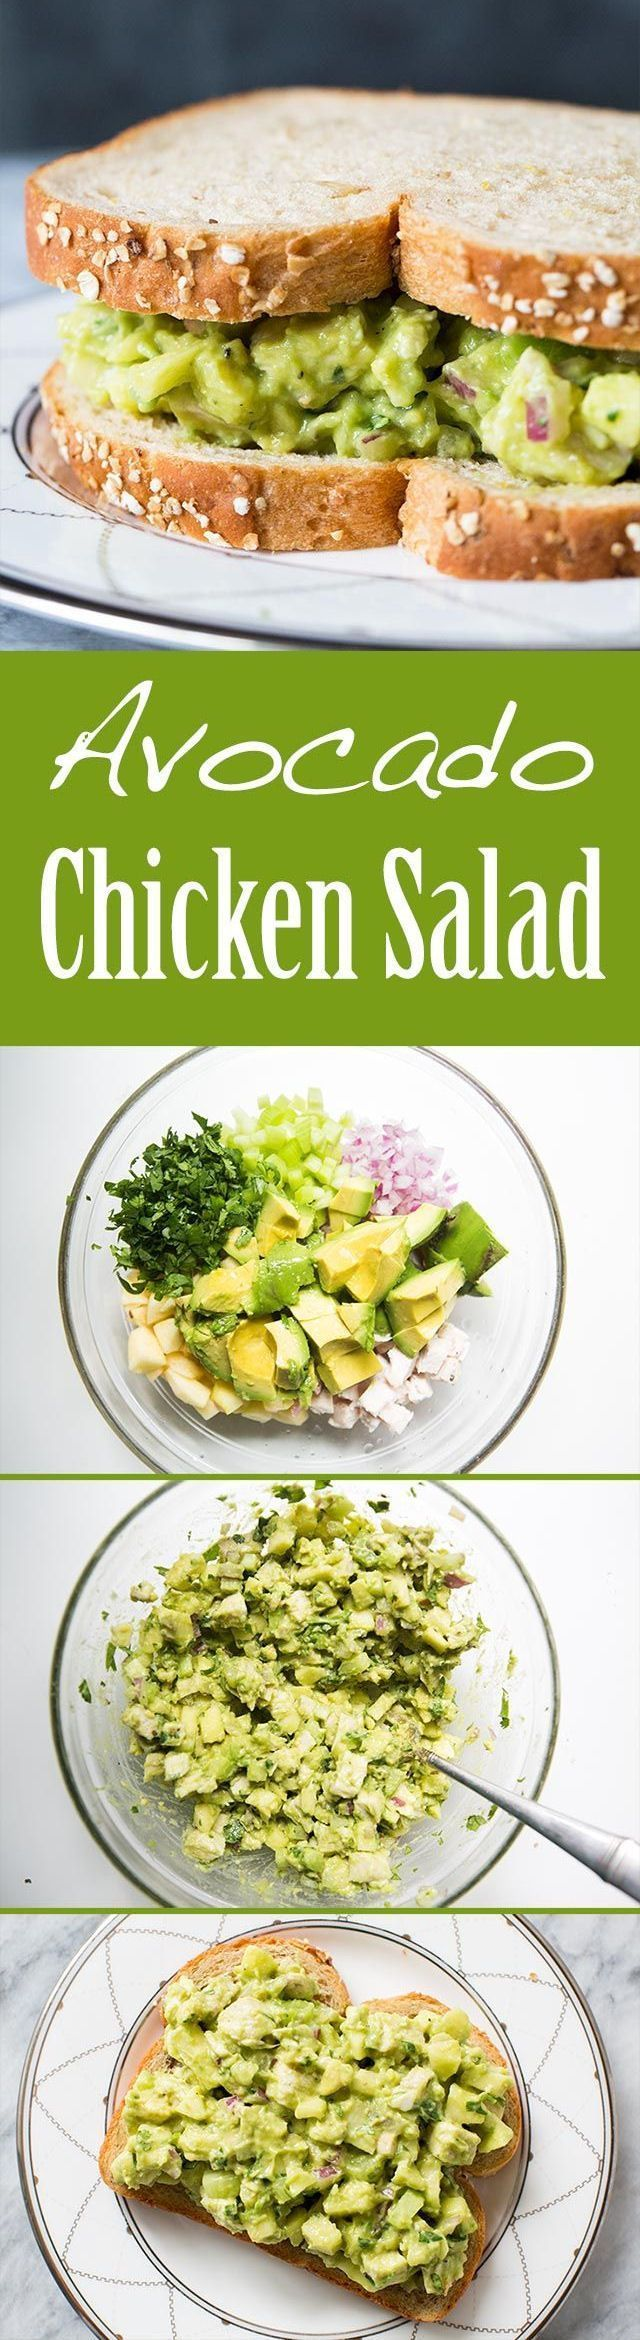 EASY and Healthy! Avocado chicken salad with avocado, chopped cooked chicken, apple, celery, and onion. No Mayo! On SimplyRecipes.com